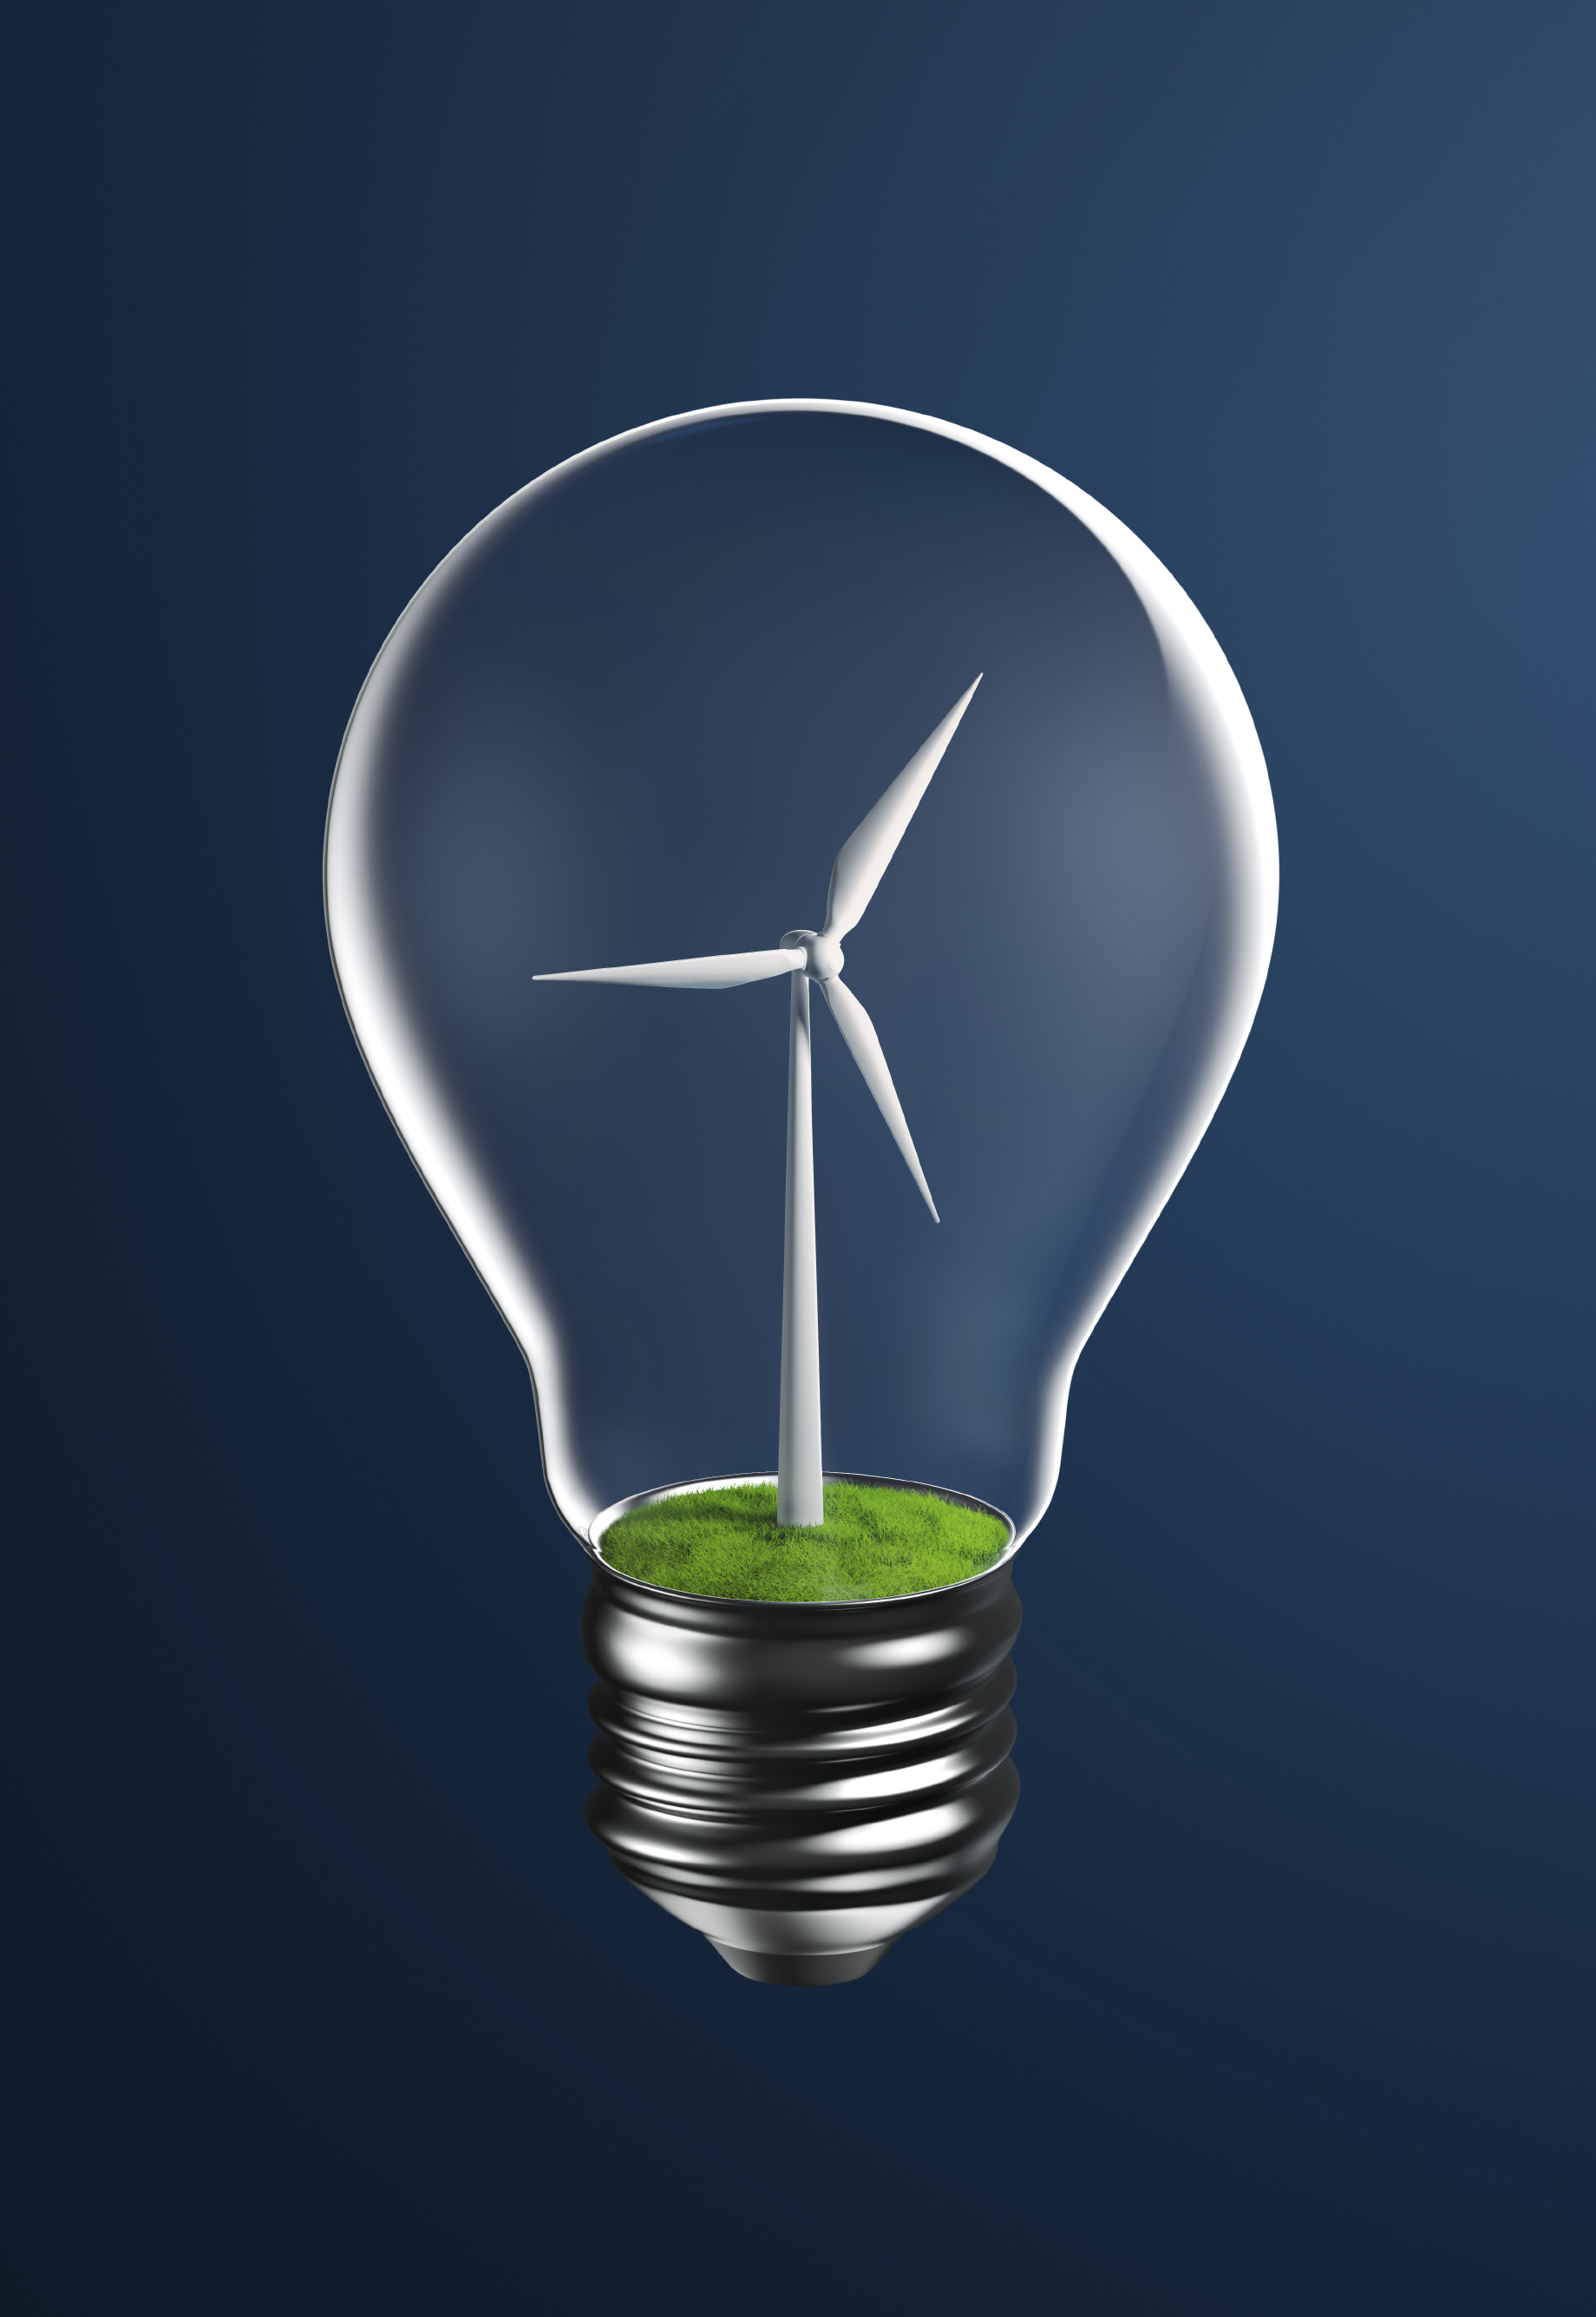 Wind Turbine on Grassland Inside a Light Bulb